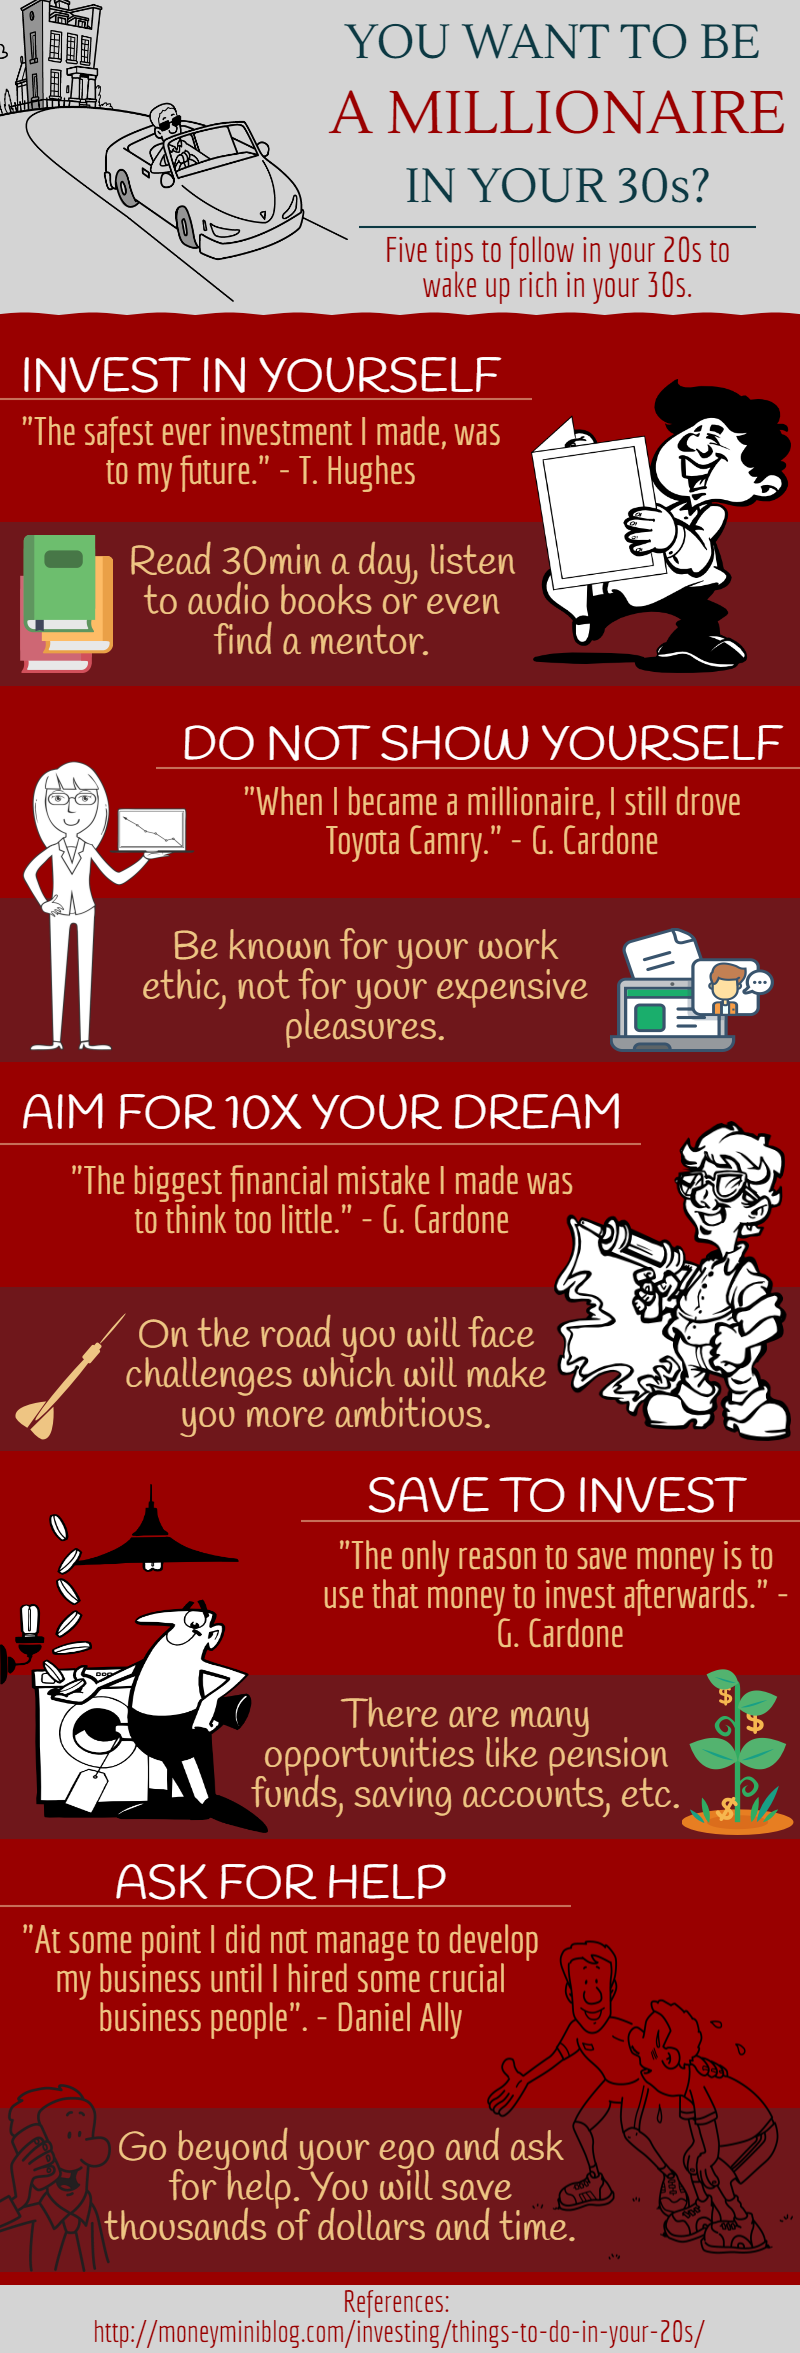 things to do in your 20s to be a millionaire in your 30s infographic